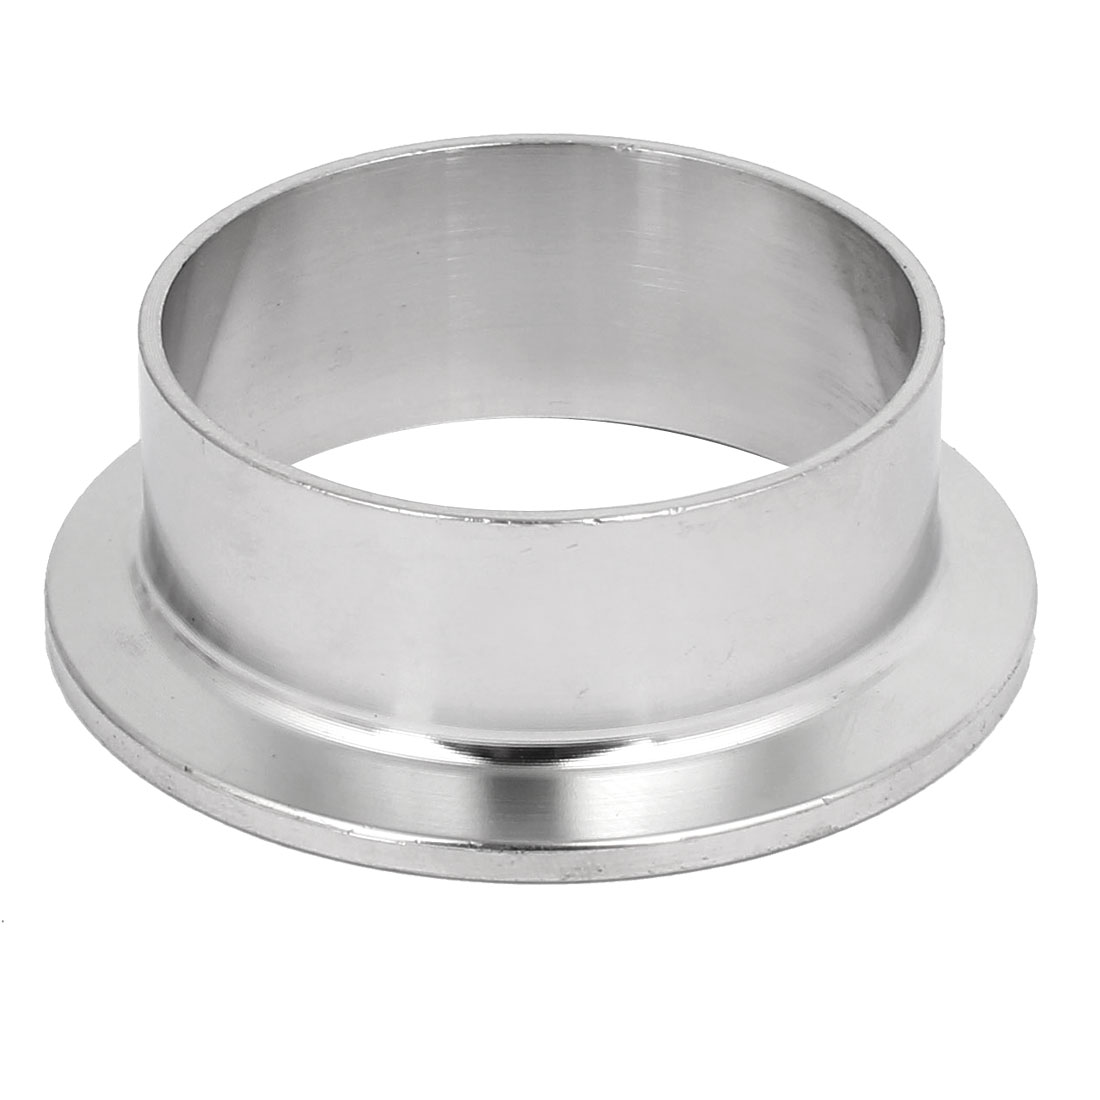 304 Stainless Steel 51mm OD Sanitary Pipe Weld on Ferrule Fits 2 Tri Clamp 273mm od sanitary weld on 286mm ferrule tri clamp stainless steel welding pipe fitting ss304 sw 273